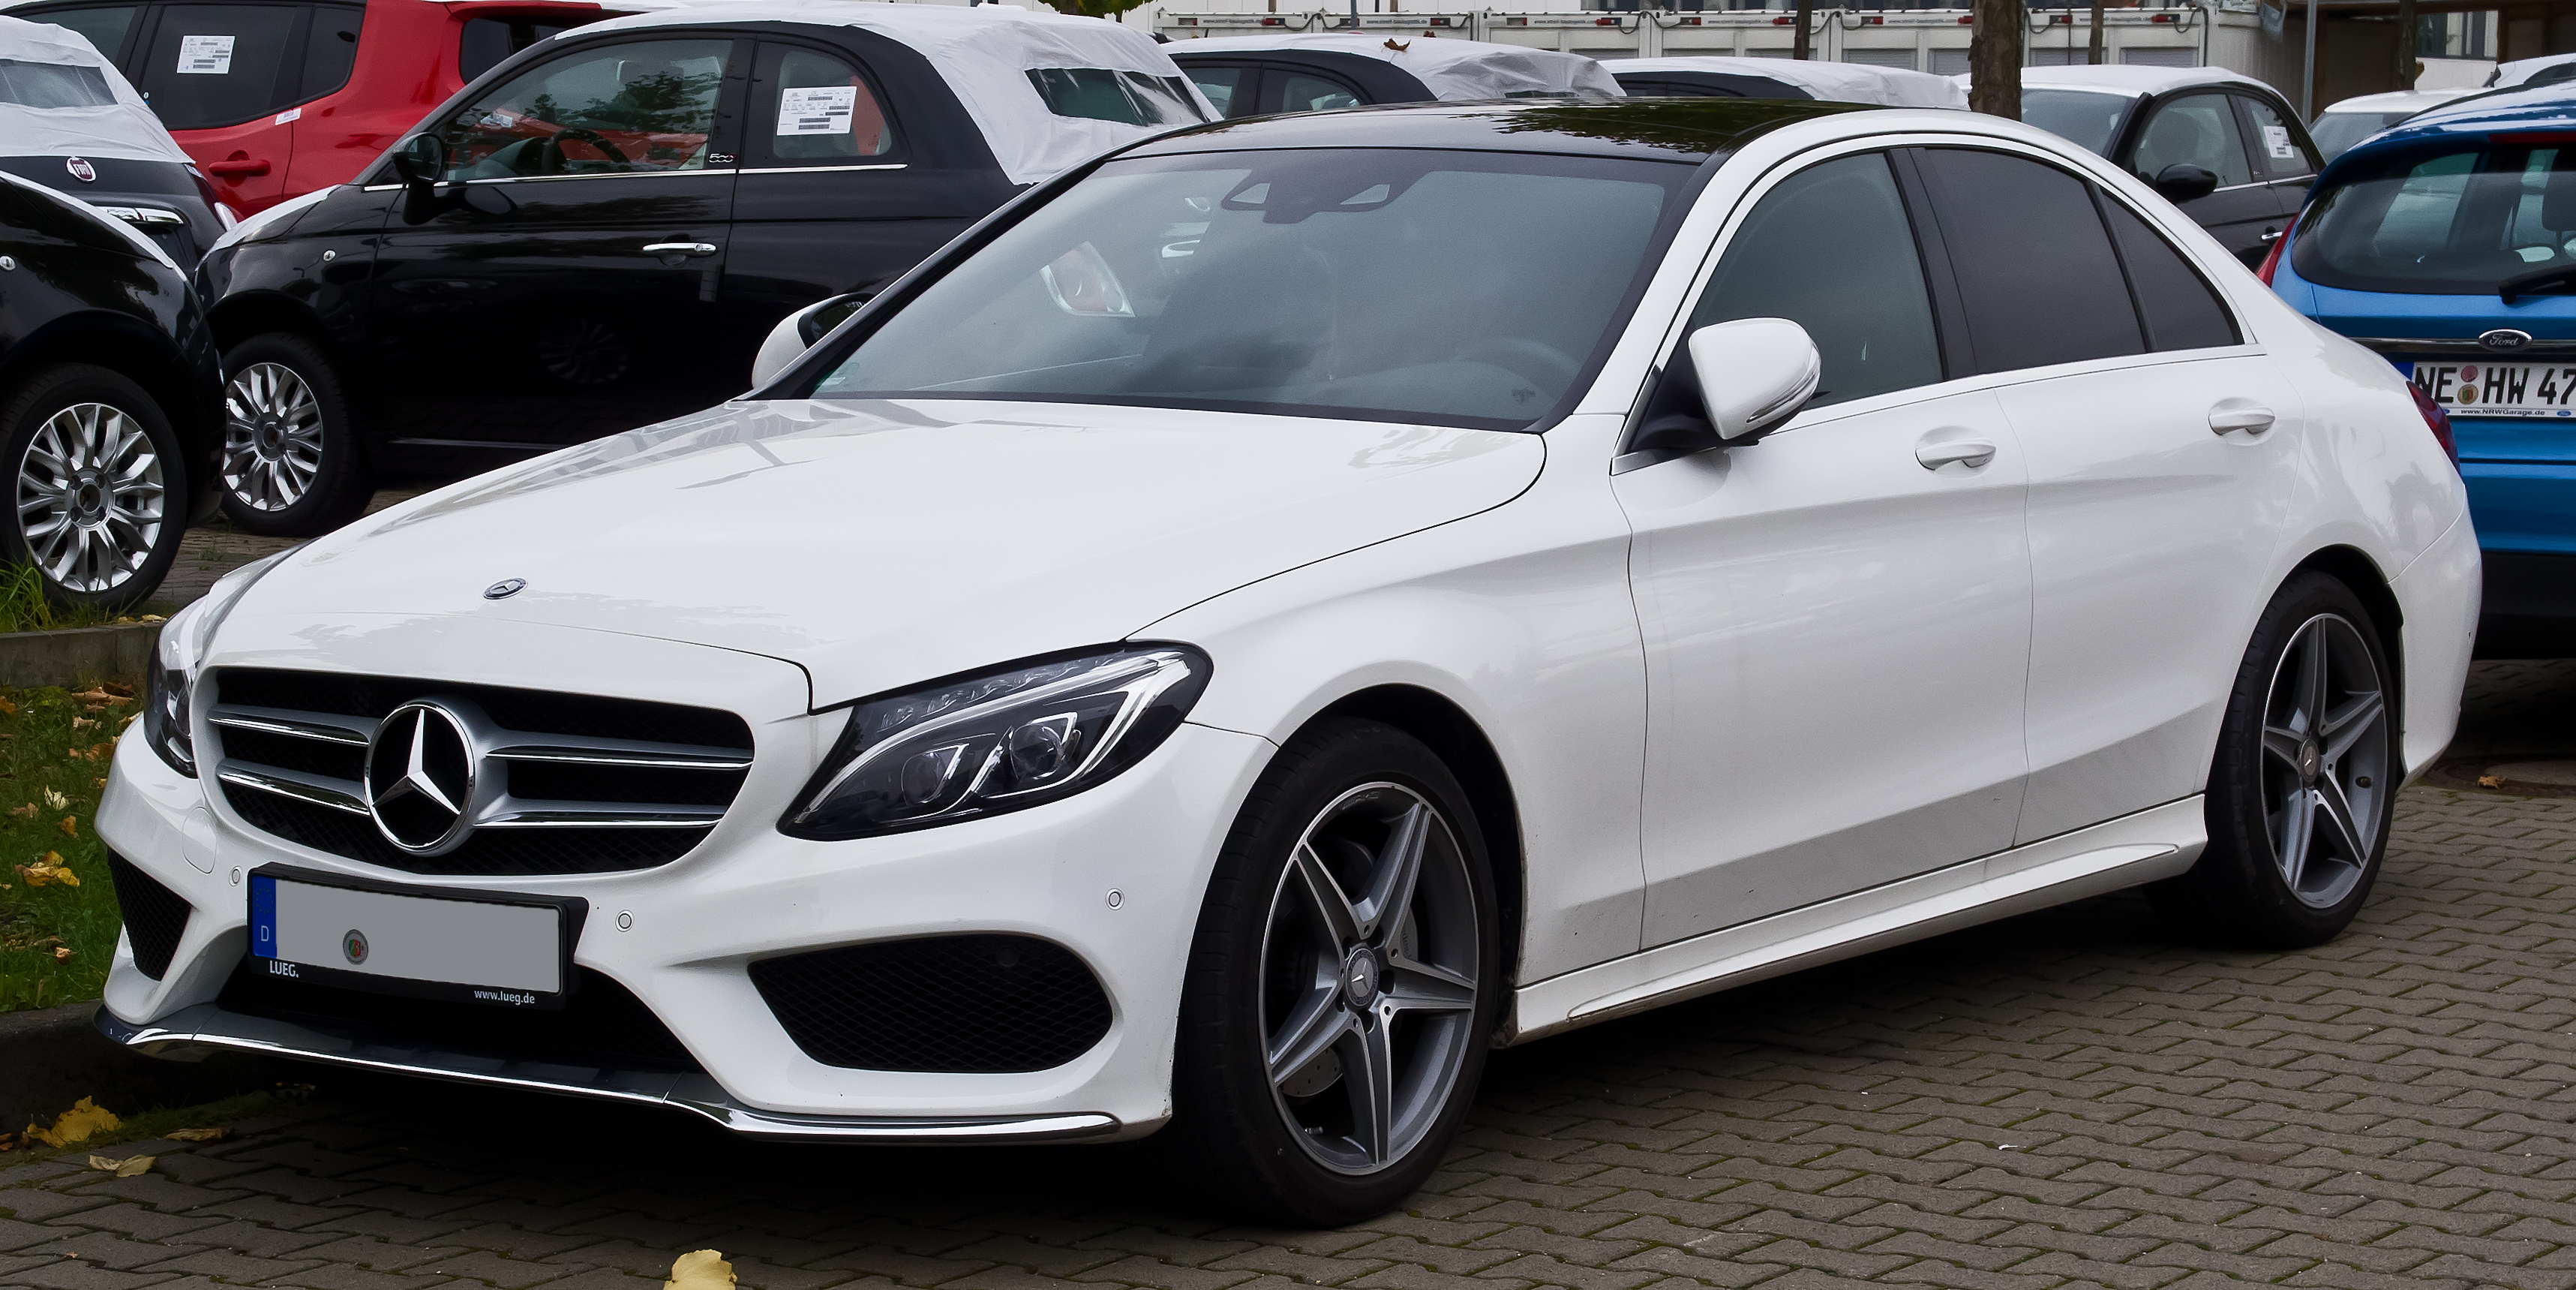 Early Mercedes Benz S63 Amg Coupe For Sale In Dubai besides C63 Lenkrad I205209275 moreover Mercedes 2017 C63 Amg further Watch furthermore 1080021 pagani Huayra Chassis Number 1 For Sale. on mercedes c63 amg